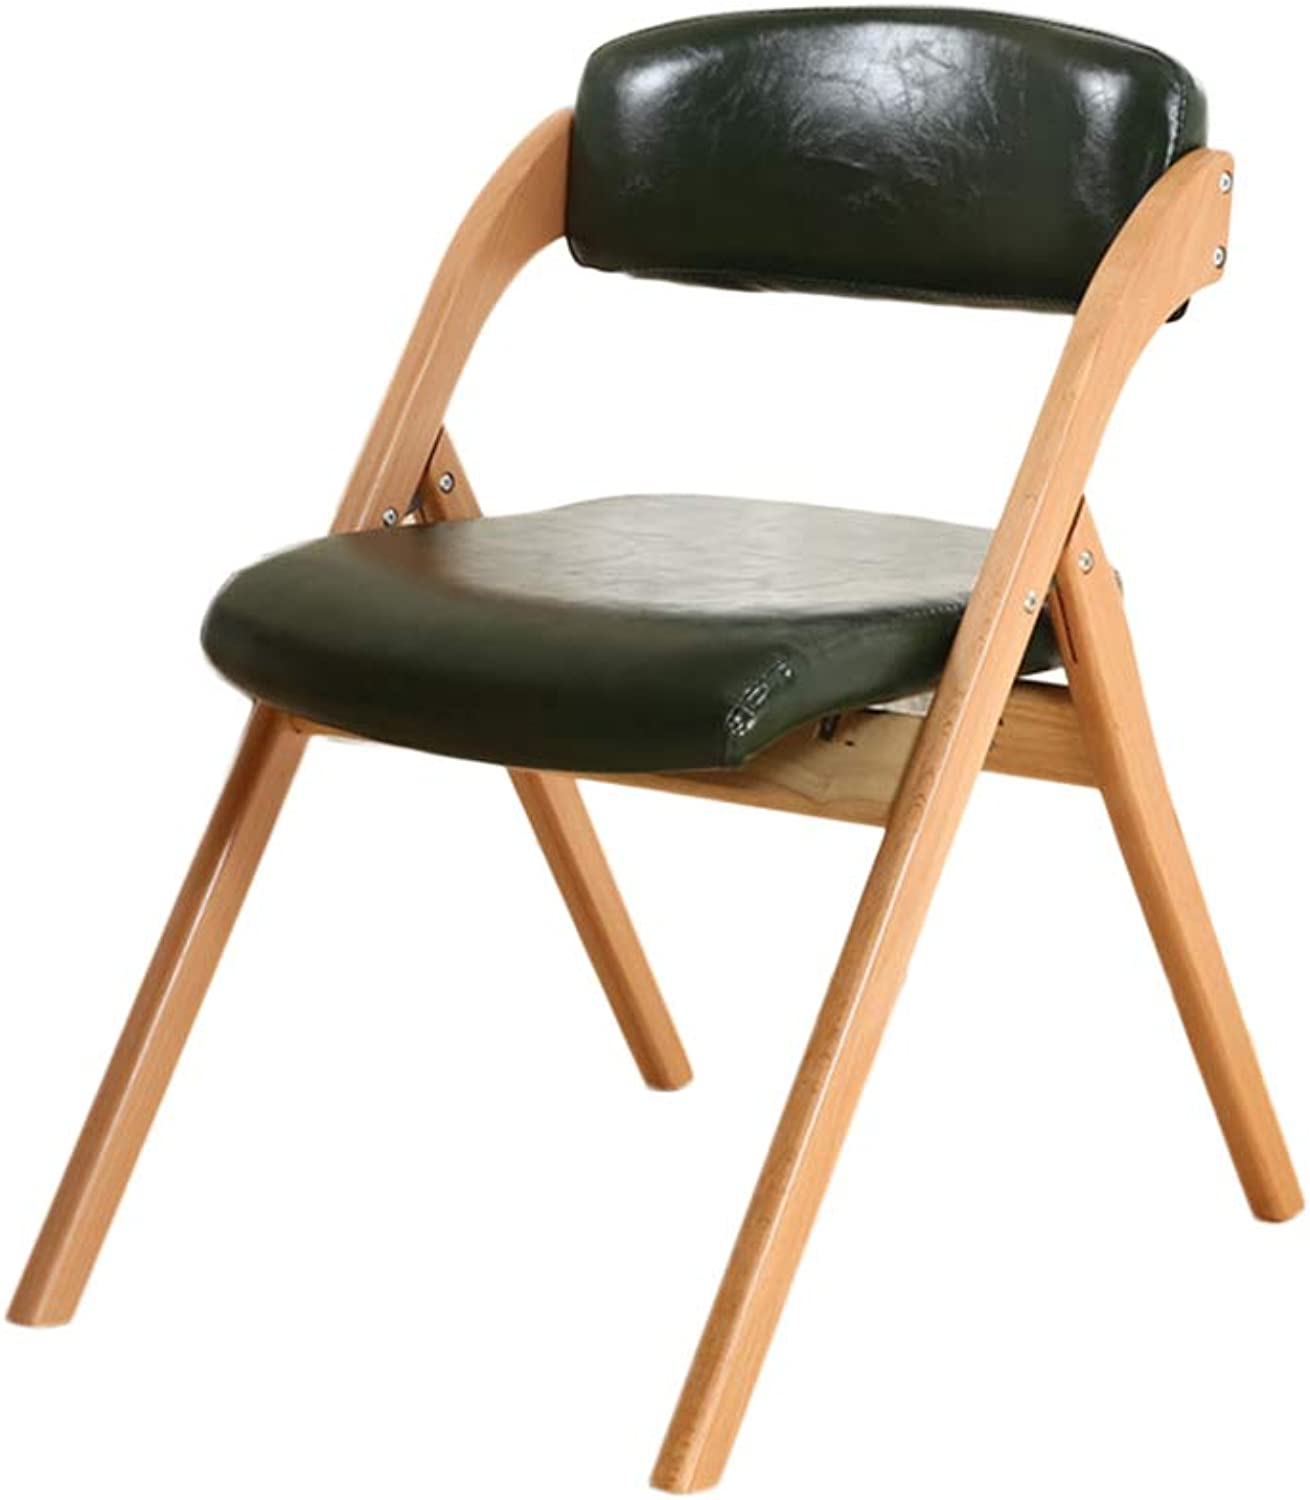 Folding Chair Folding Chair Solid Wood PU Leather Black Beech, High Elastic Sponge Pad, Home Living Room Bedroom Dining Room Computer Chair